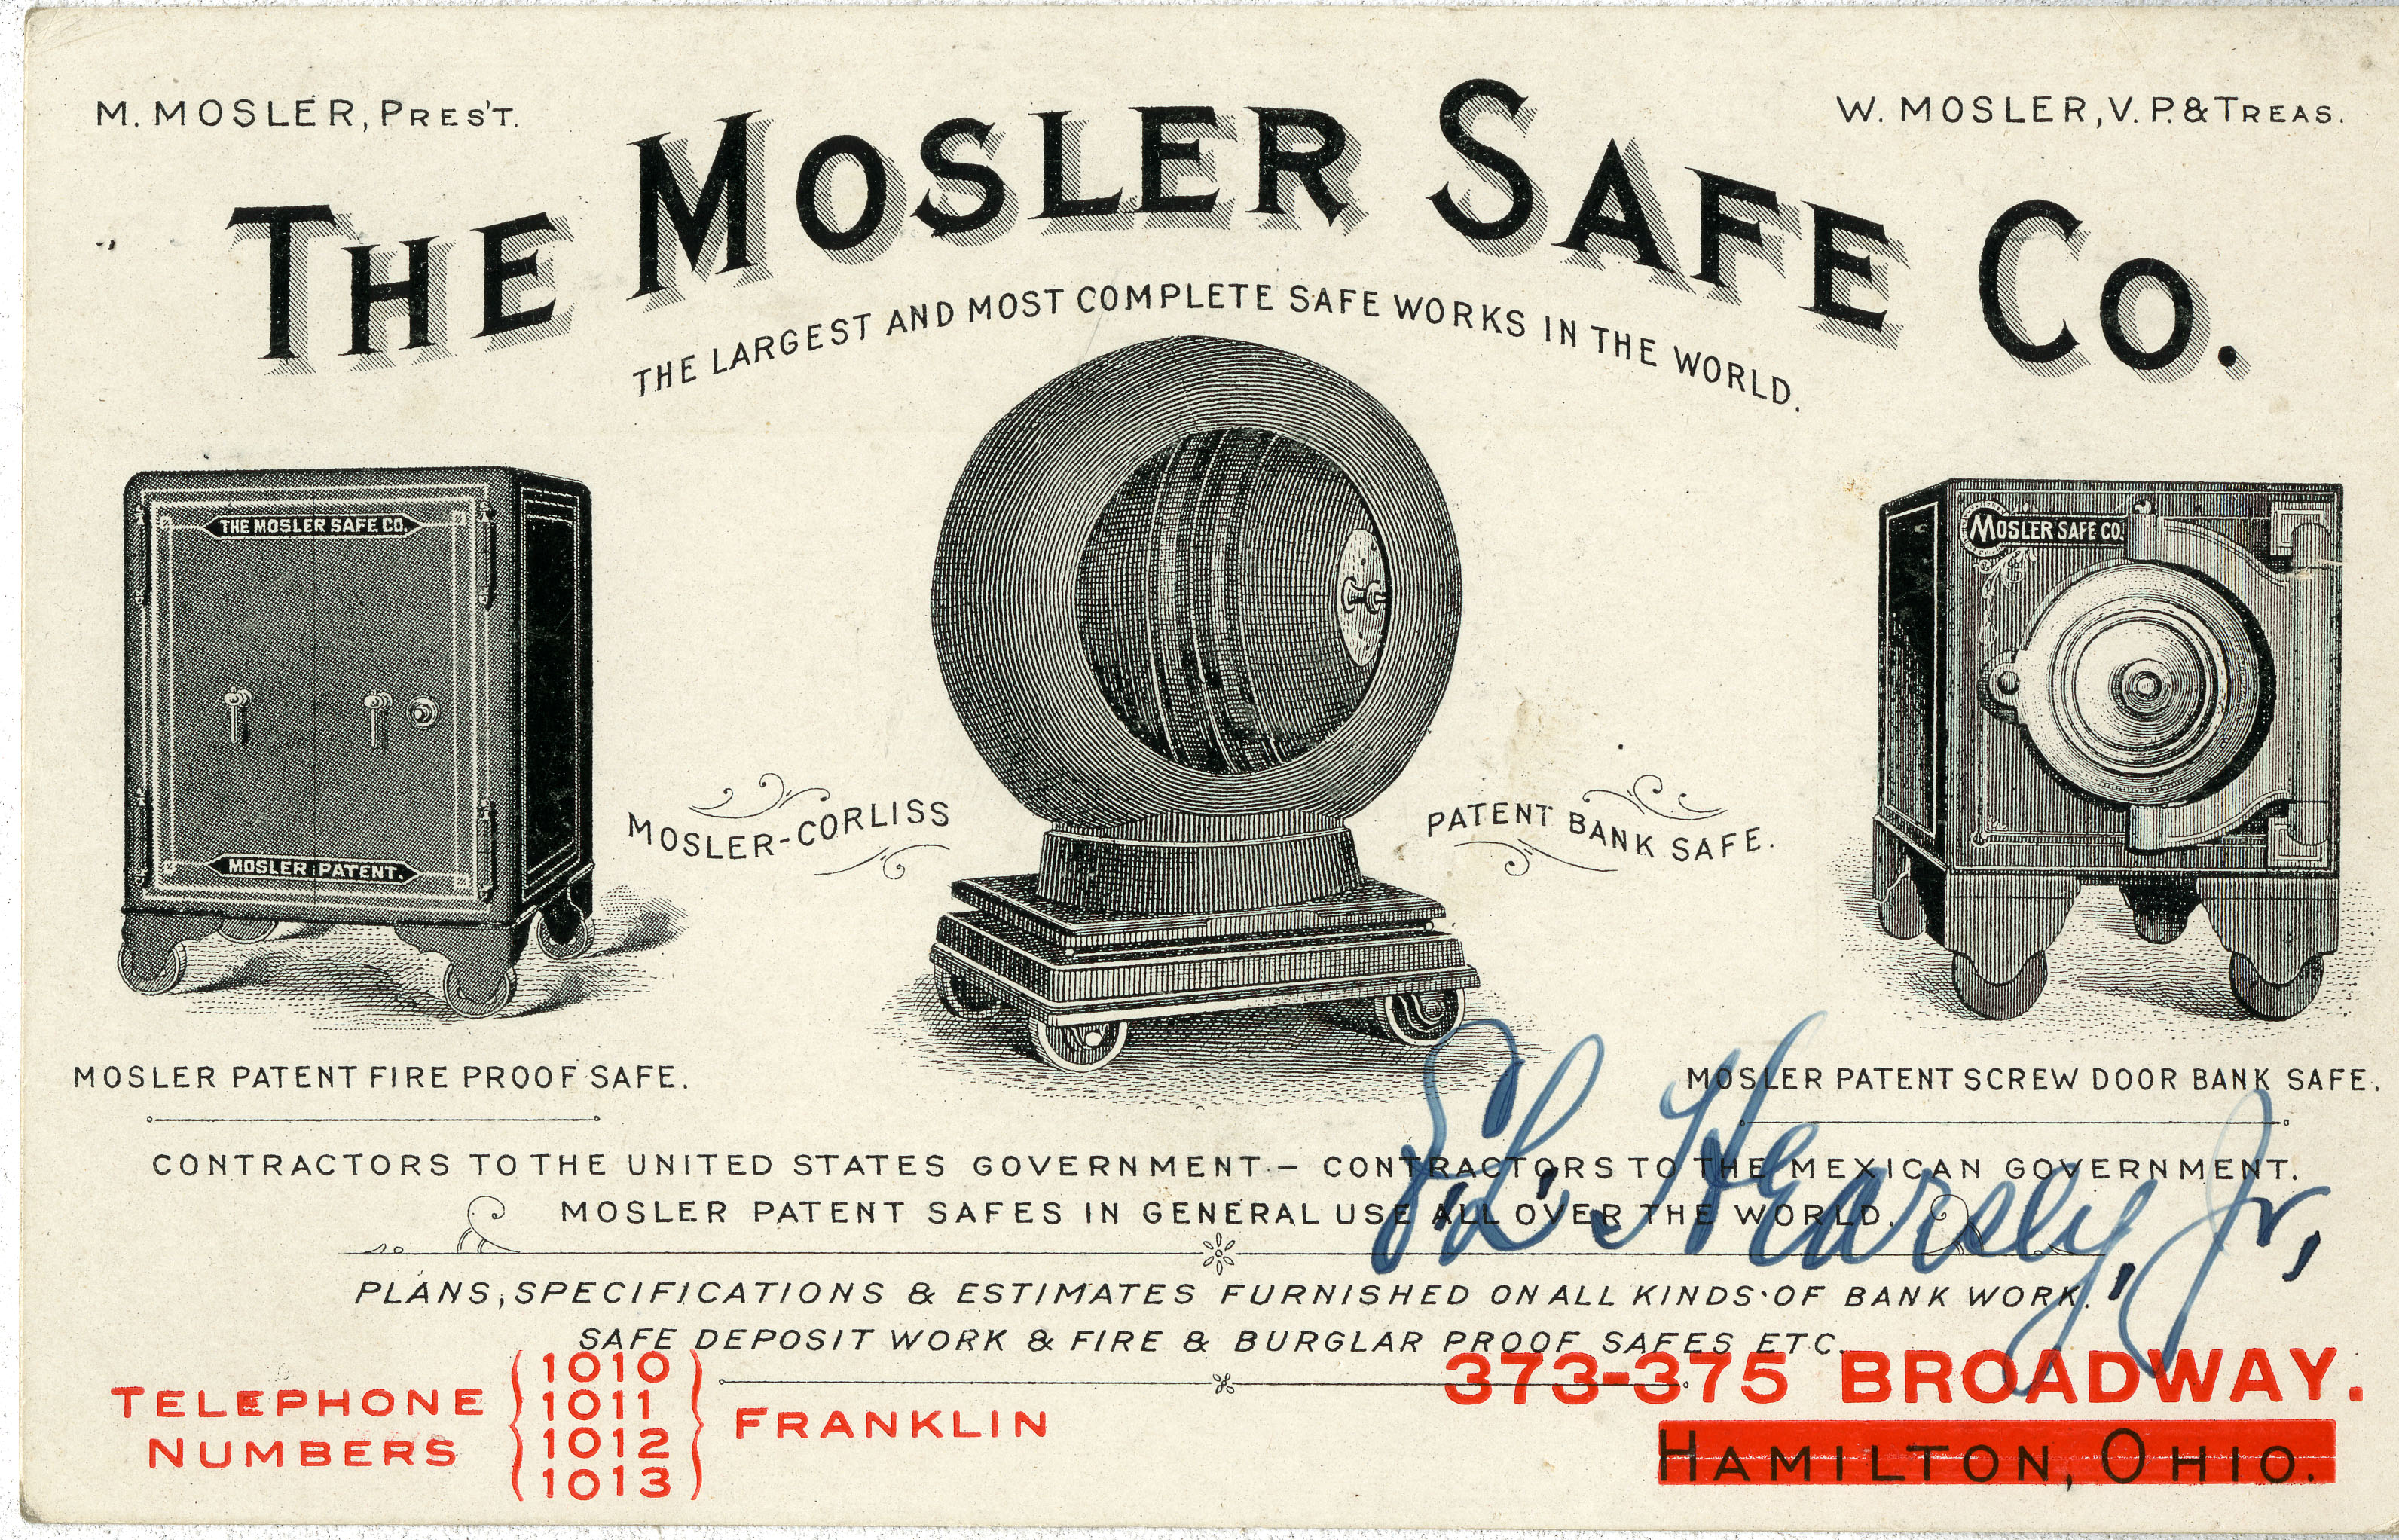 Trade card for Mosler Safe Company, undated.